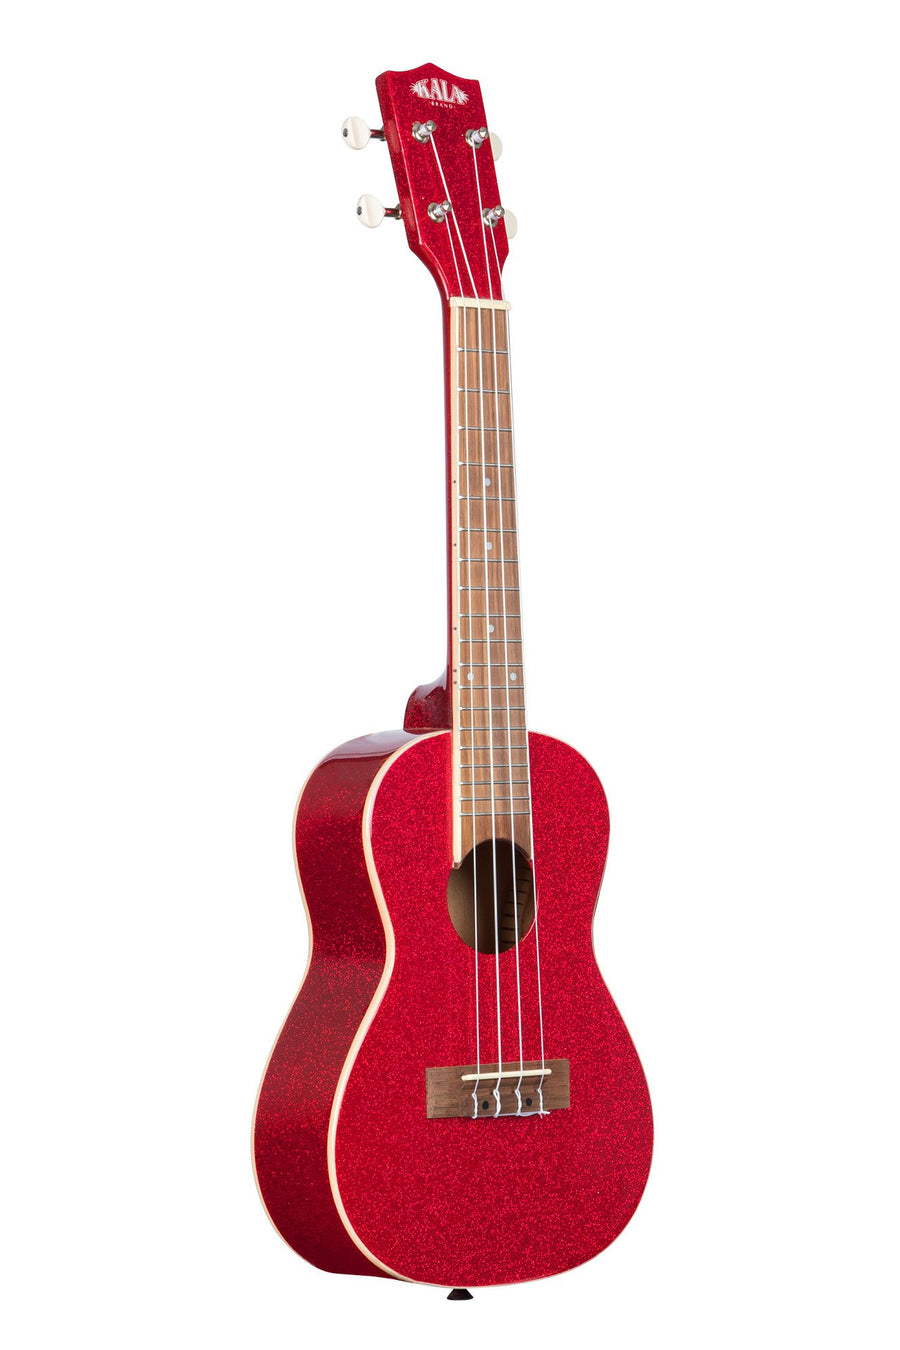 Kala KA-SPRK Sparkle Series Ritzy Red - Regent Sounds